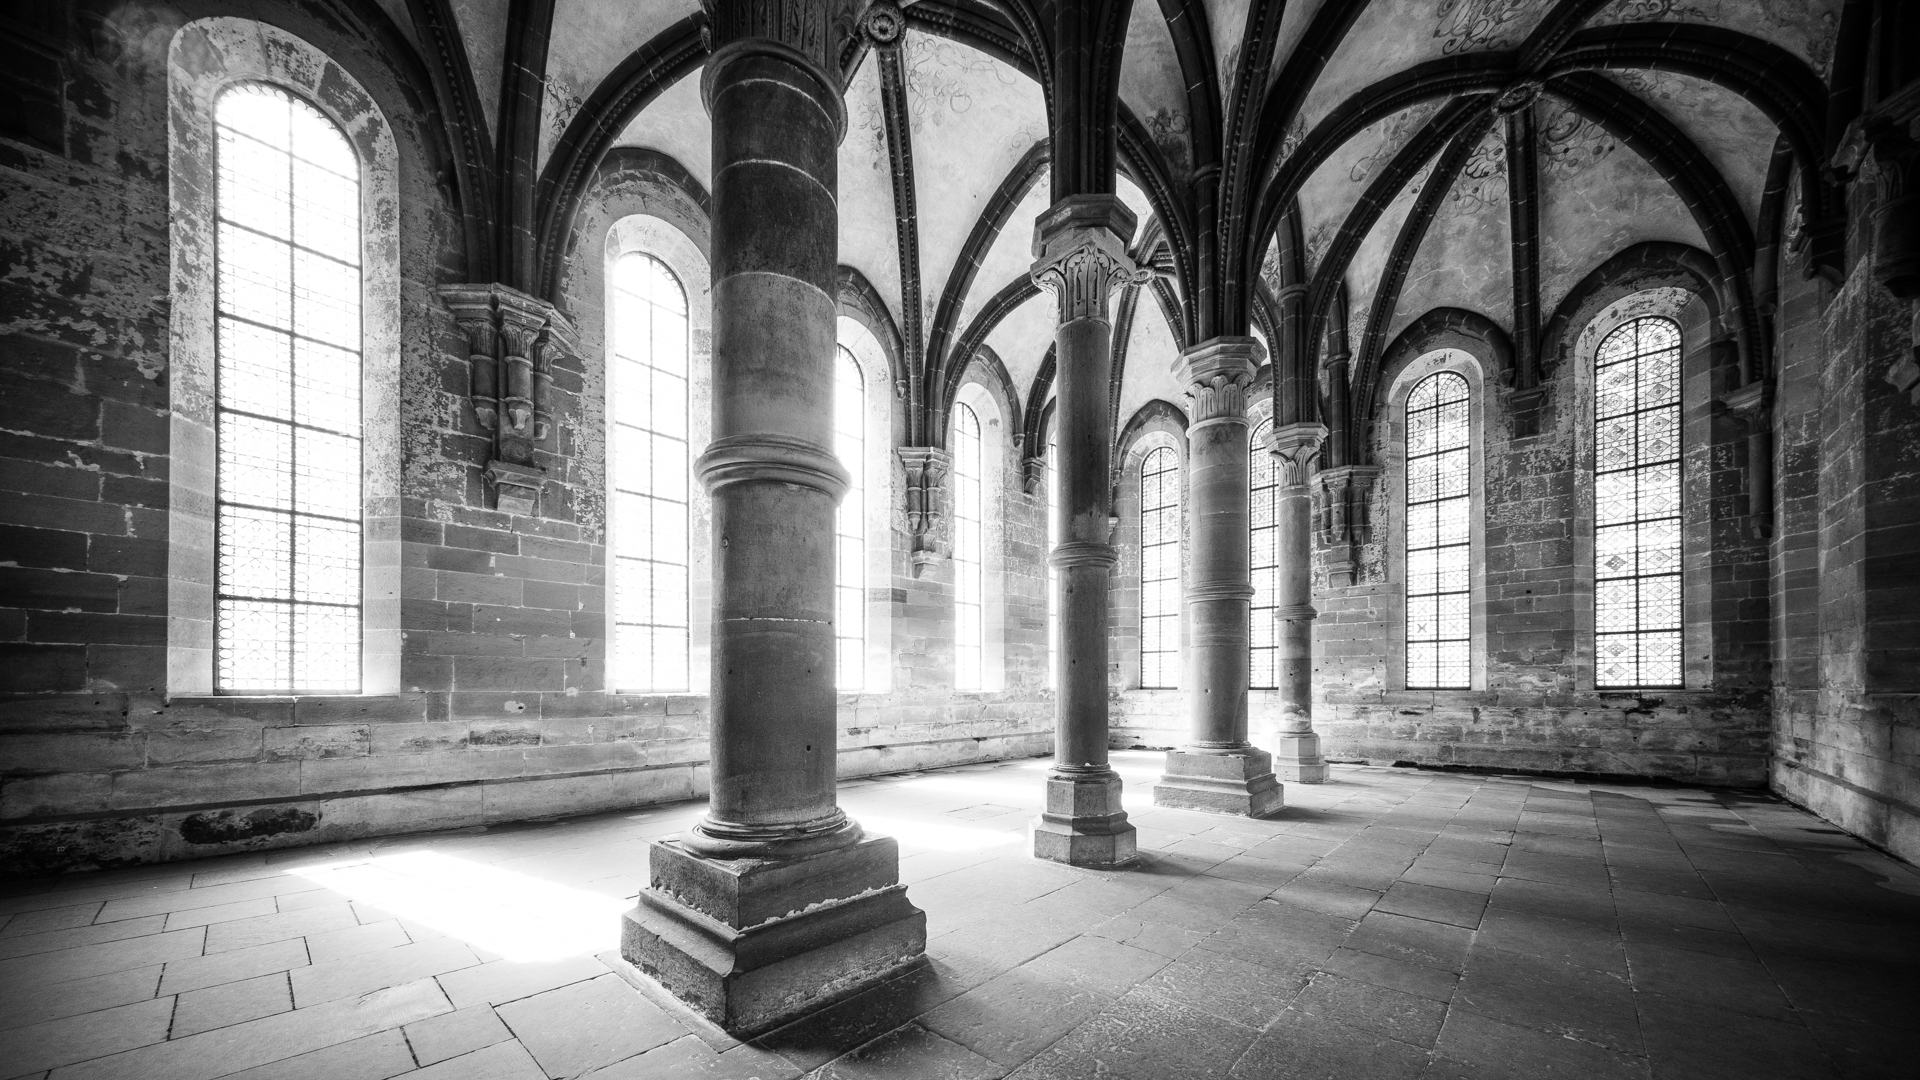 Kloster Maulbronn, Germany